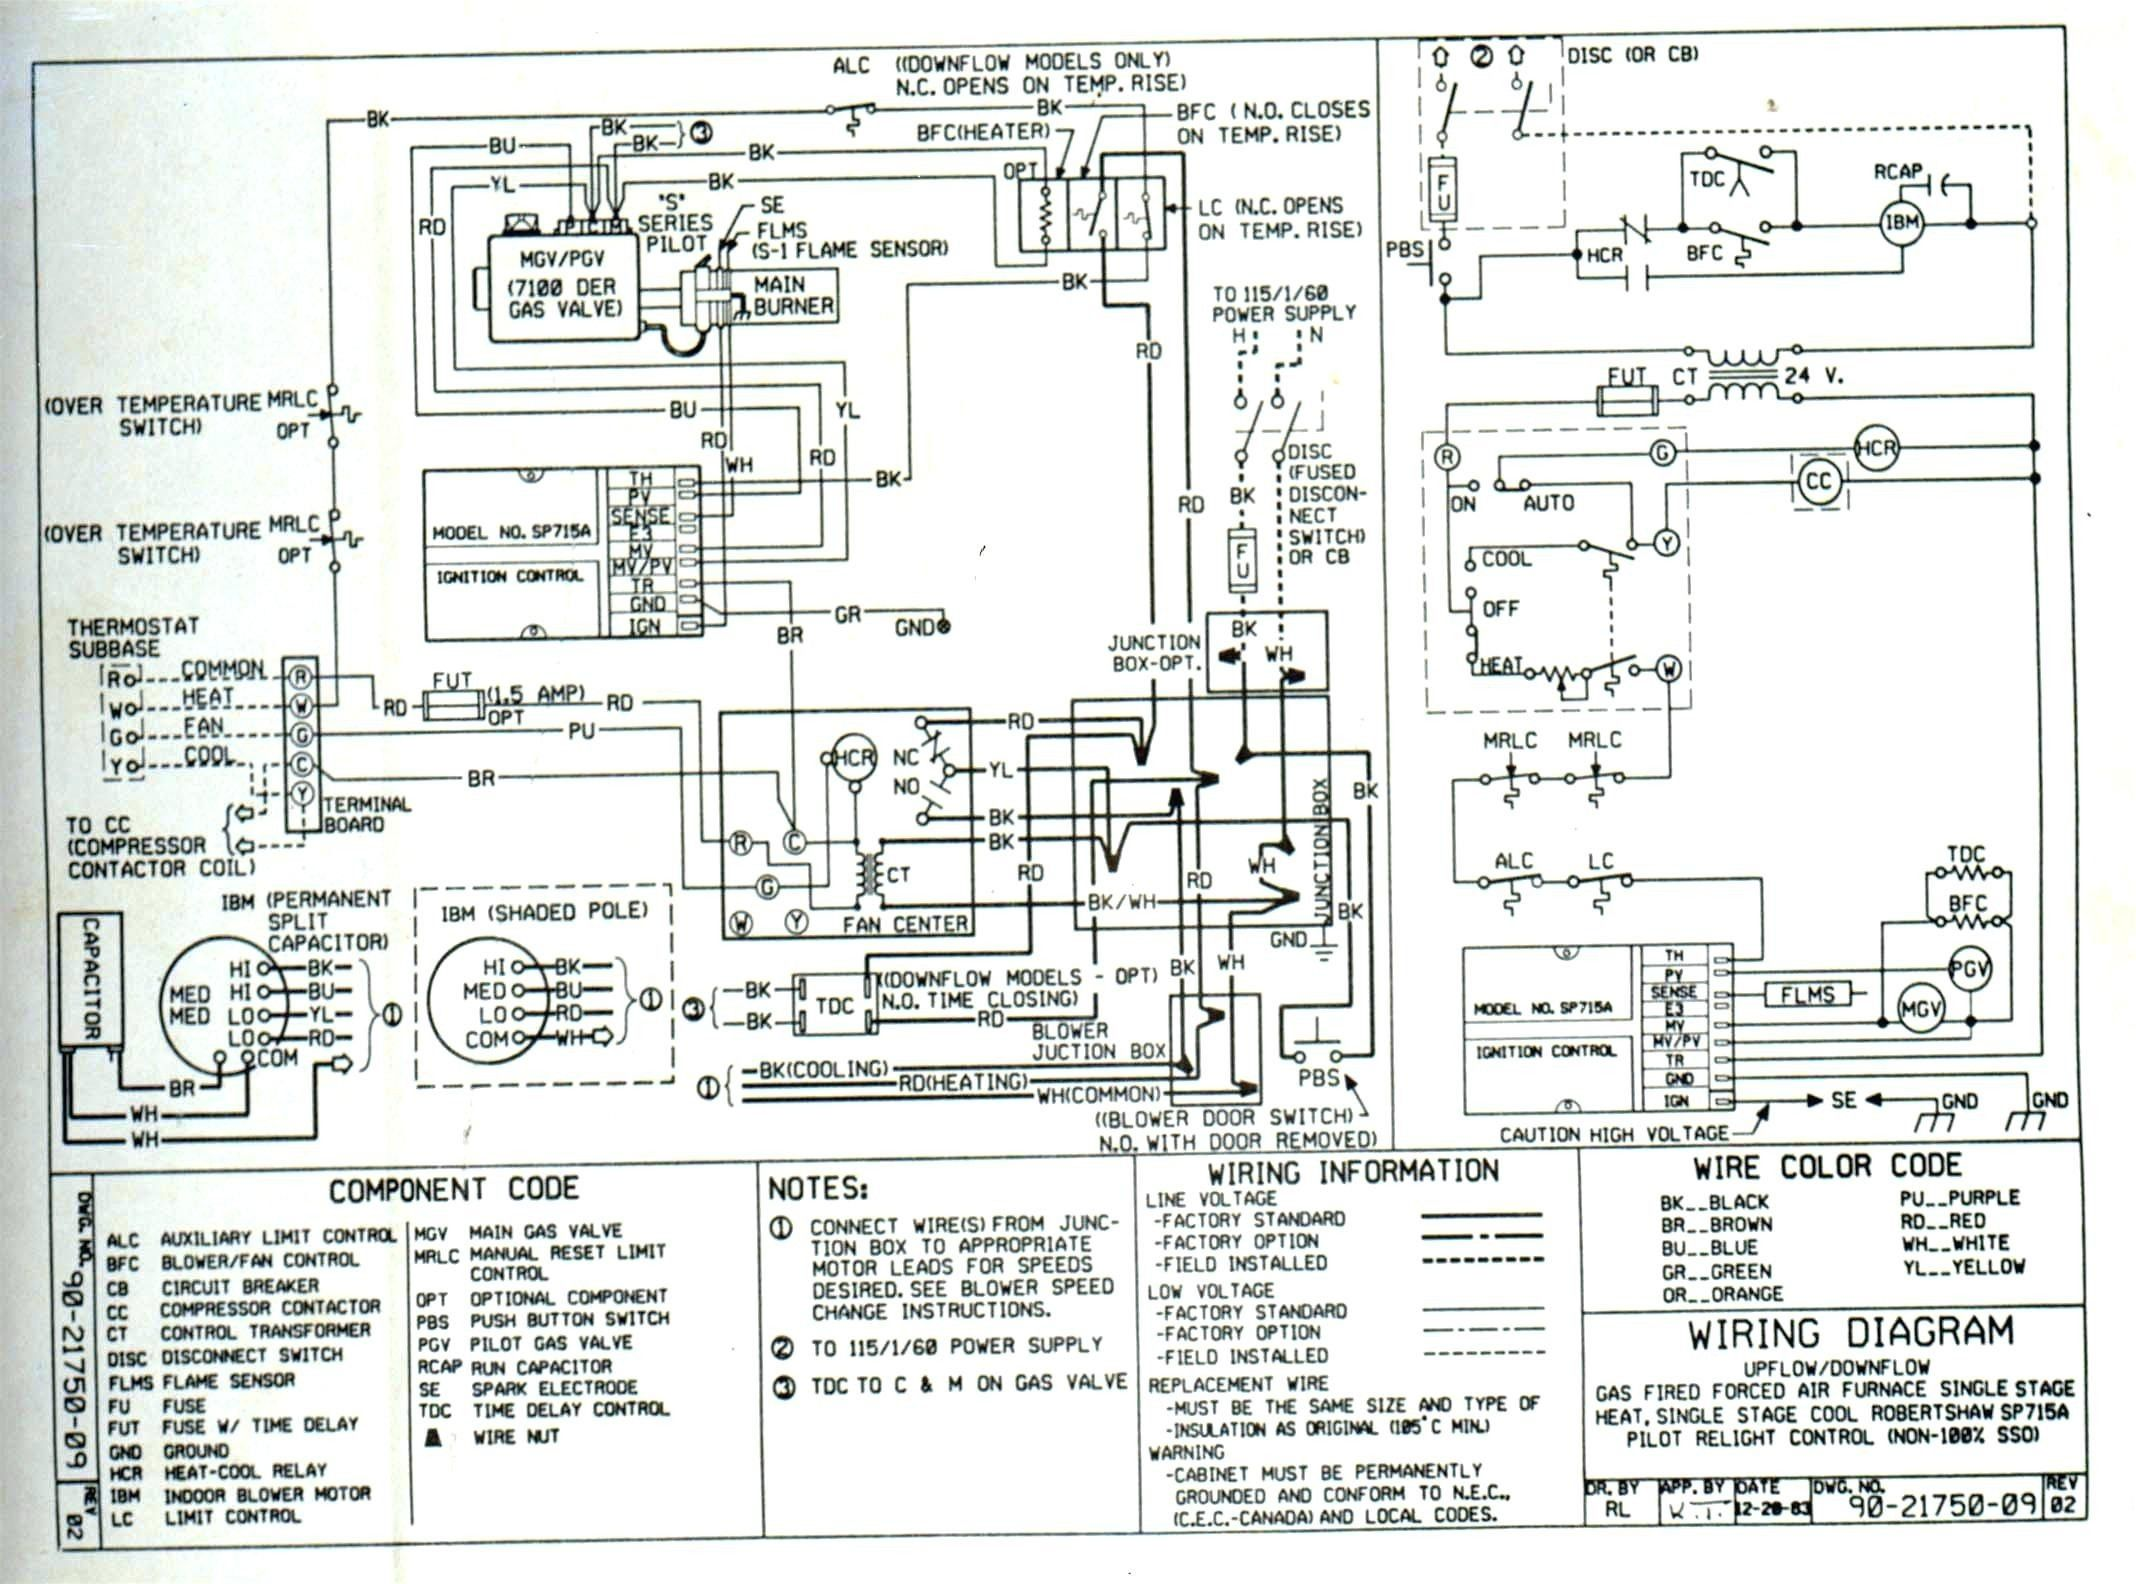 Trane Weathertron Heat Pump Thermostat Wiring Diagram from i.pinimg.com